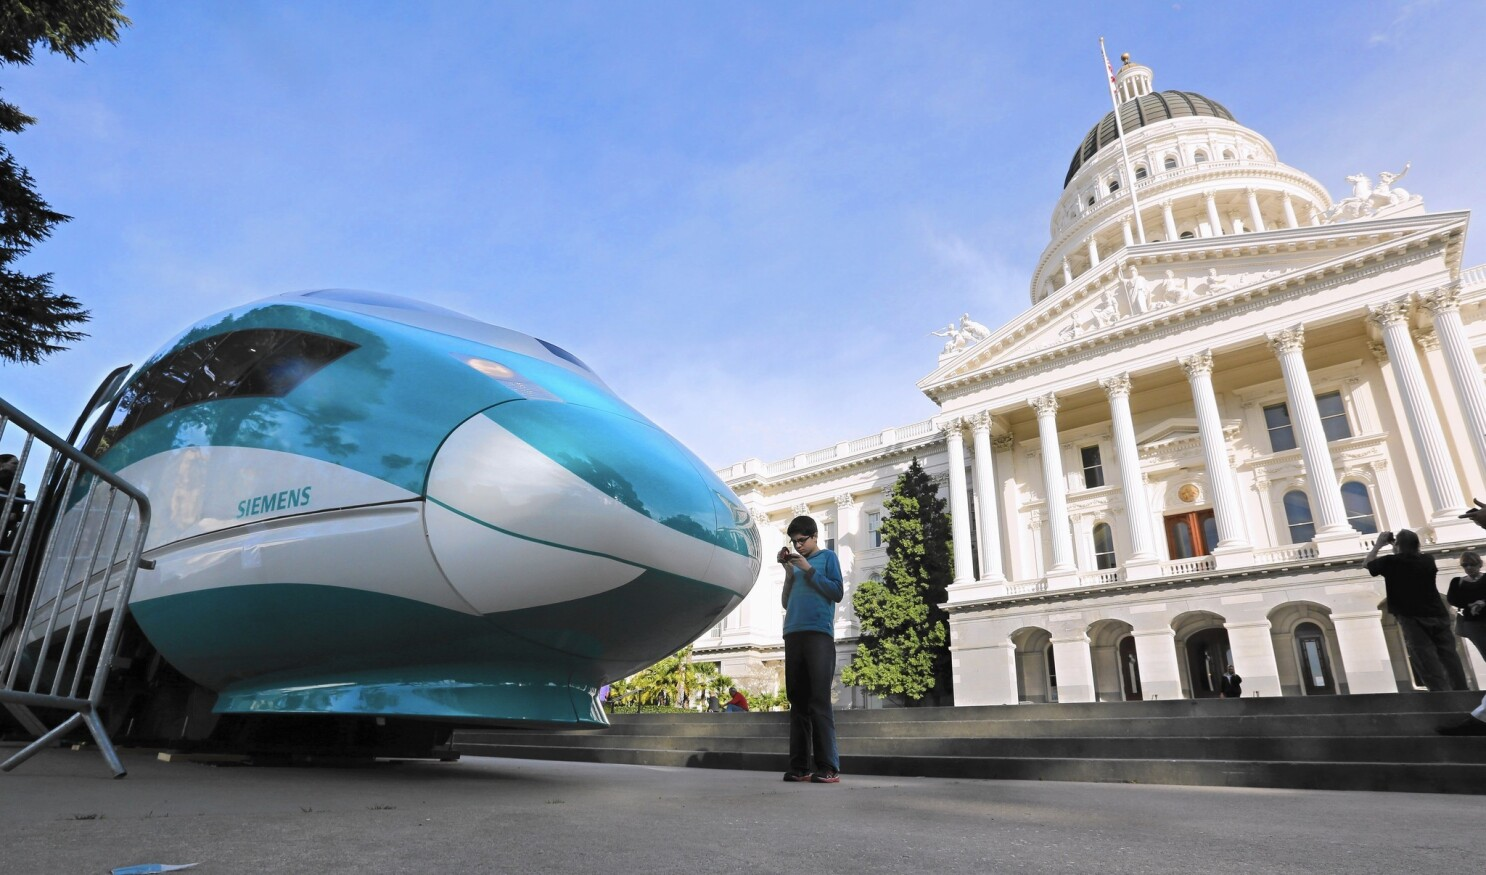 The bullet train is troubled, but it's necessary - Los